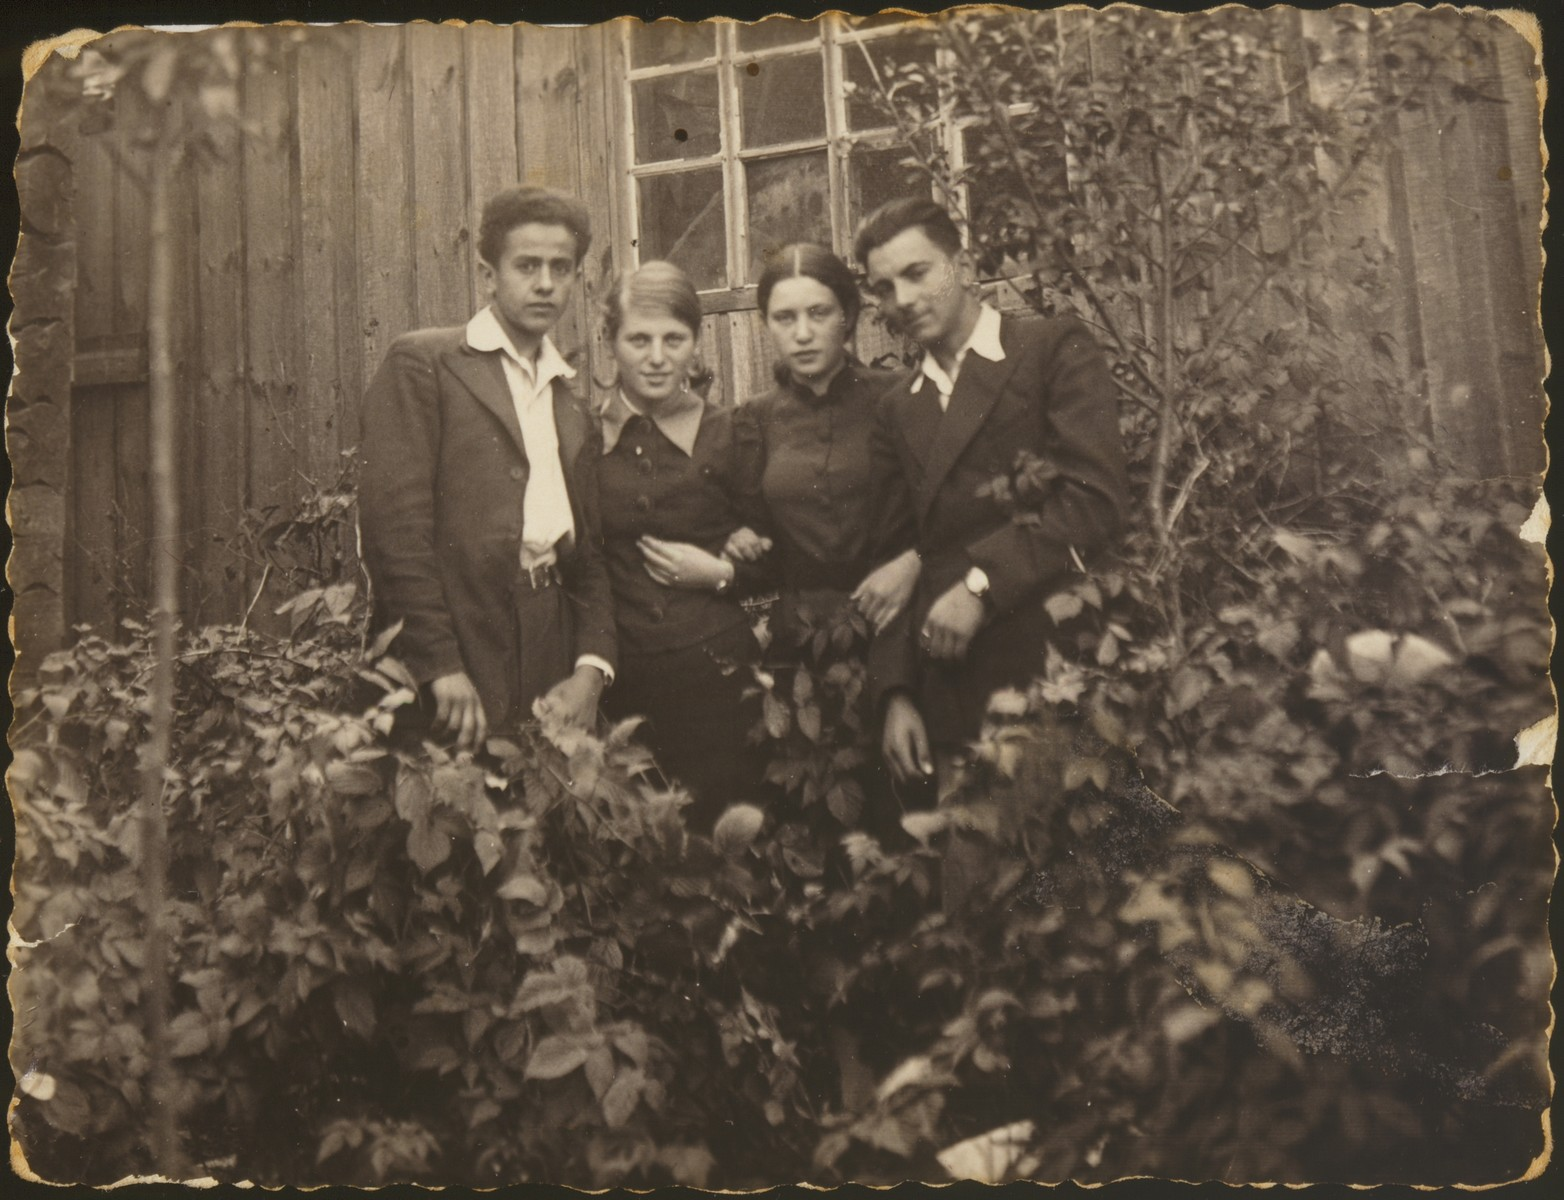 """Breine Plotnik stands with three friends in front of her house.   Breine Plotnik is standing second from left.  The photo was inscribed in Yiddish,  """"In memory for Hayya Sarah Plotnik from me your sister friend and friend Breine Plotnik, Eishyshok.  January 1, 1938."""""""